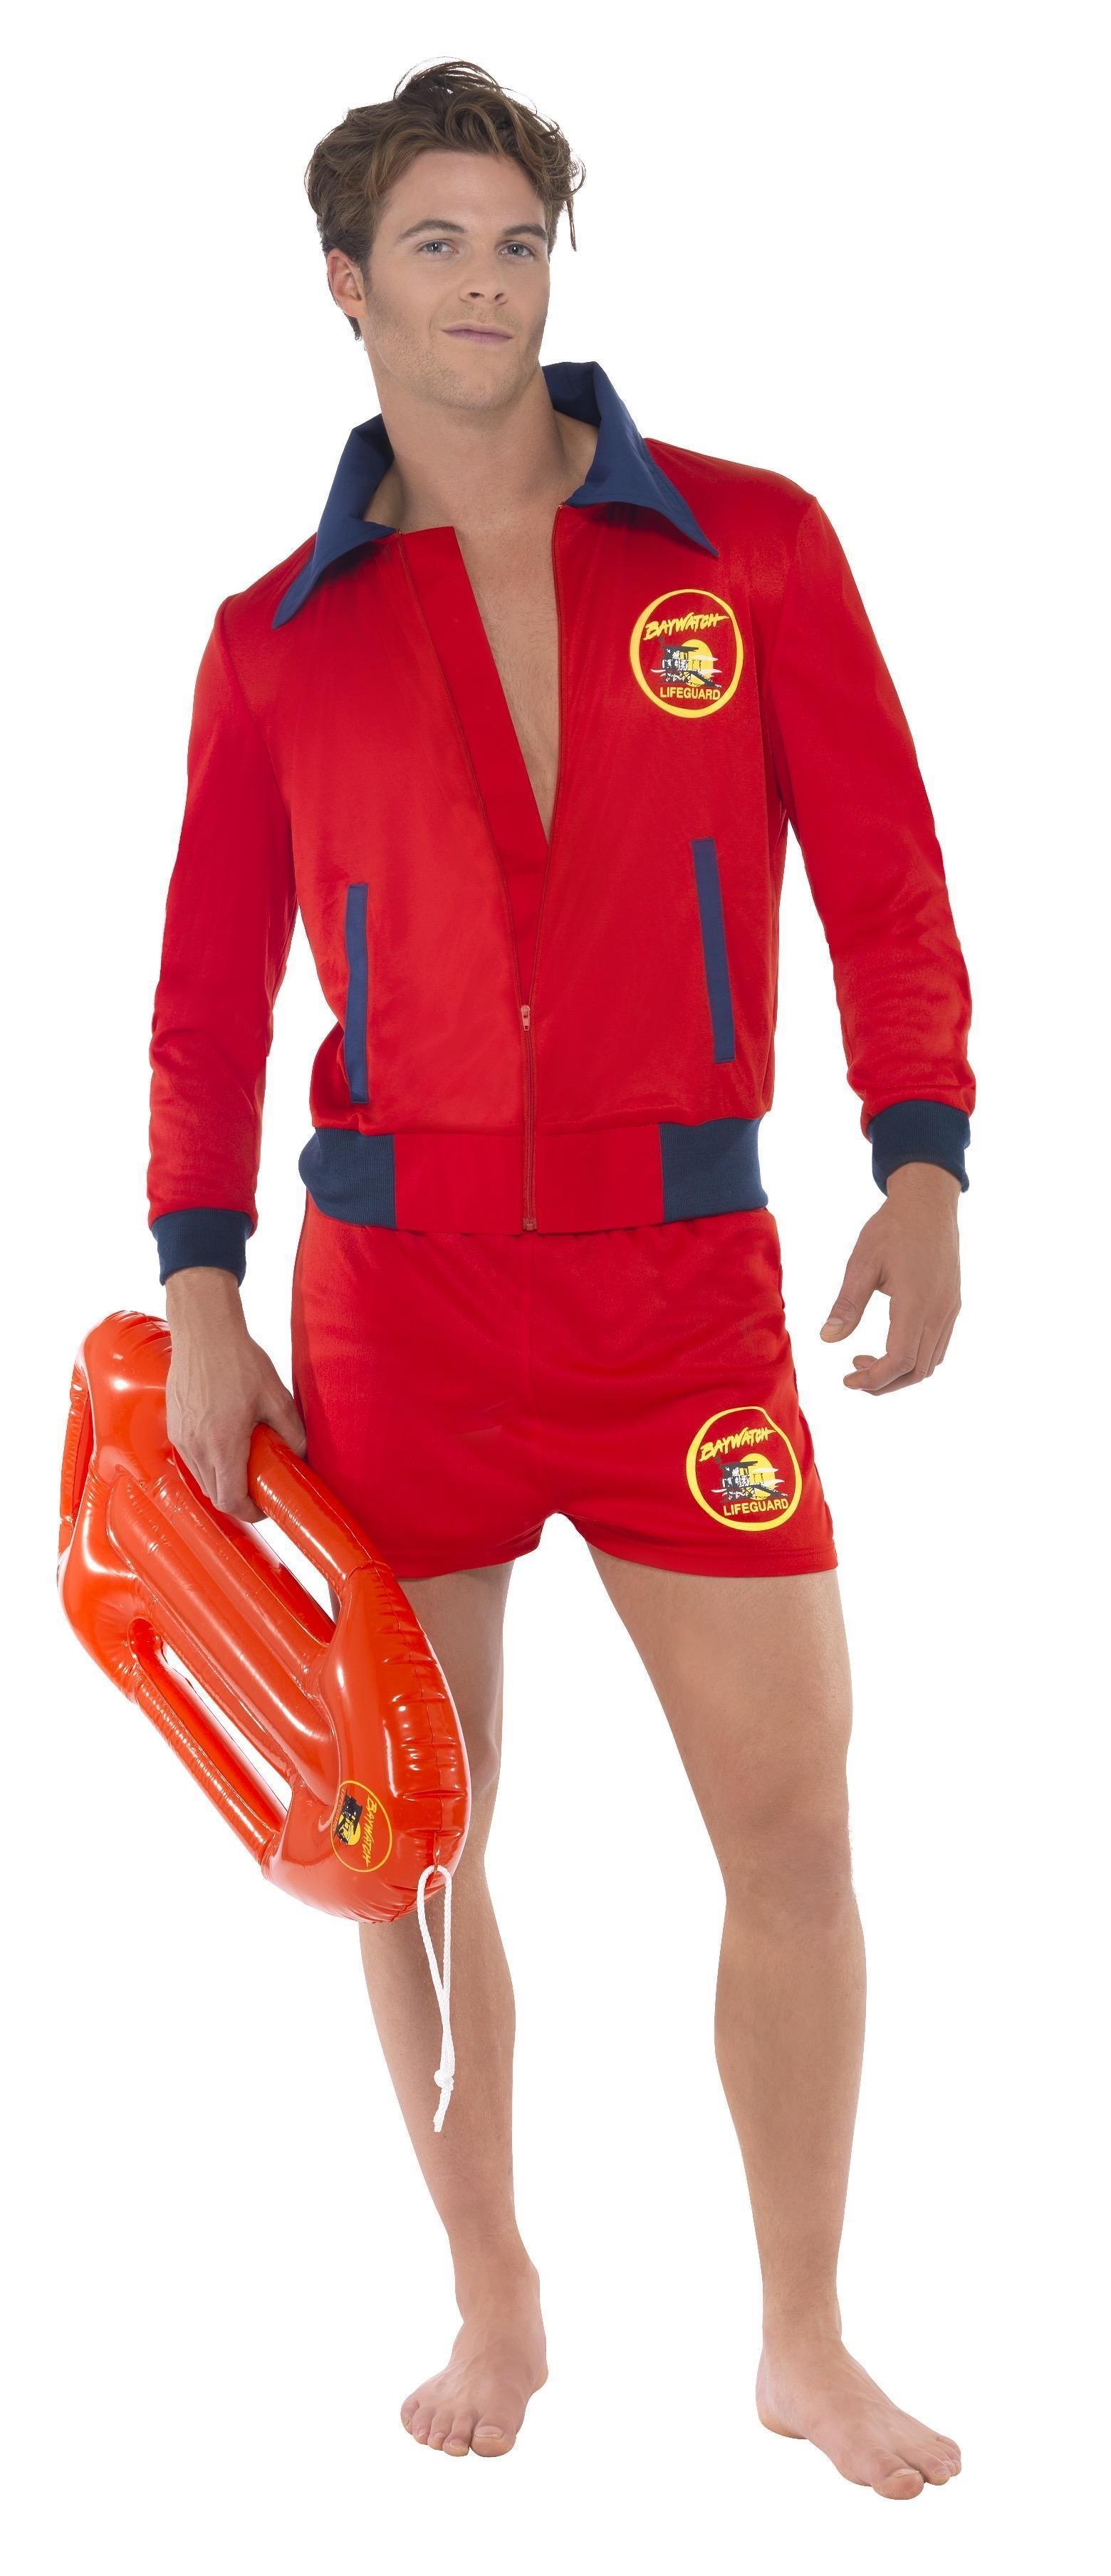 Baywatch Lifeguard Costume Mens